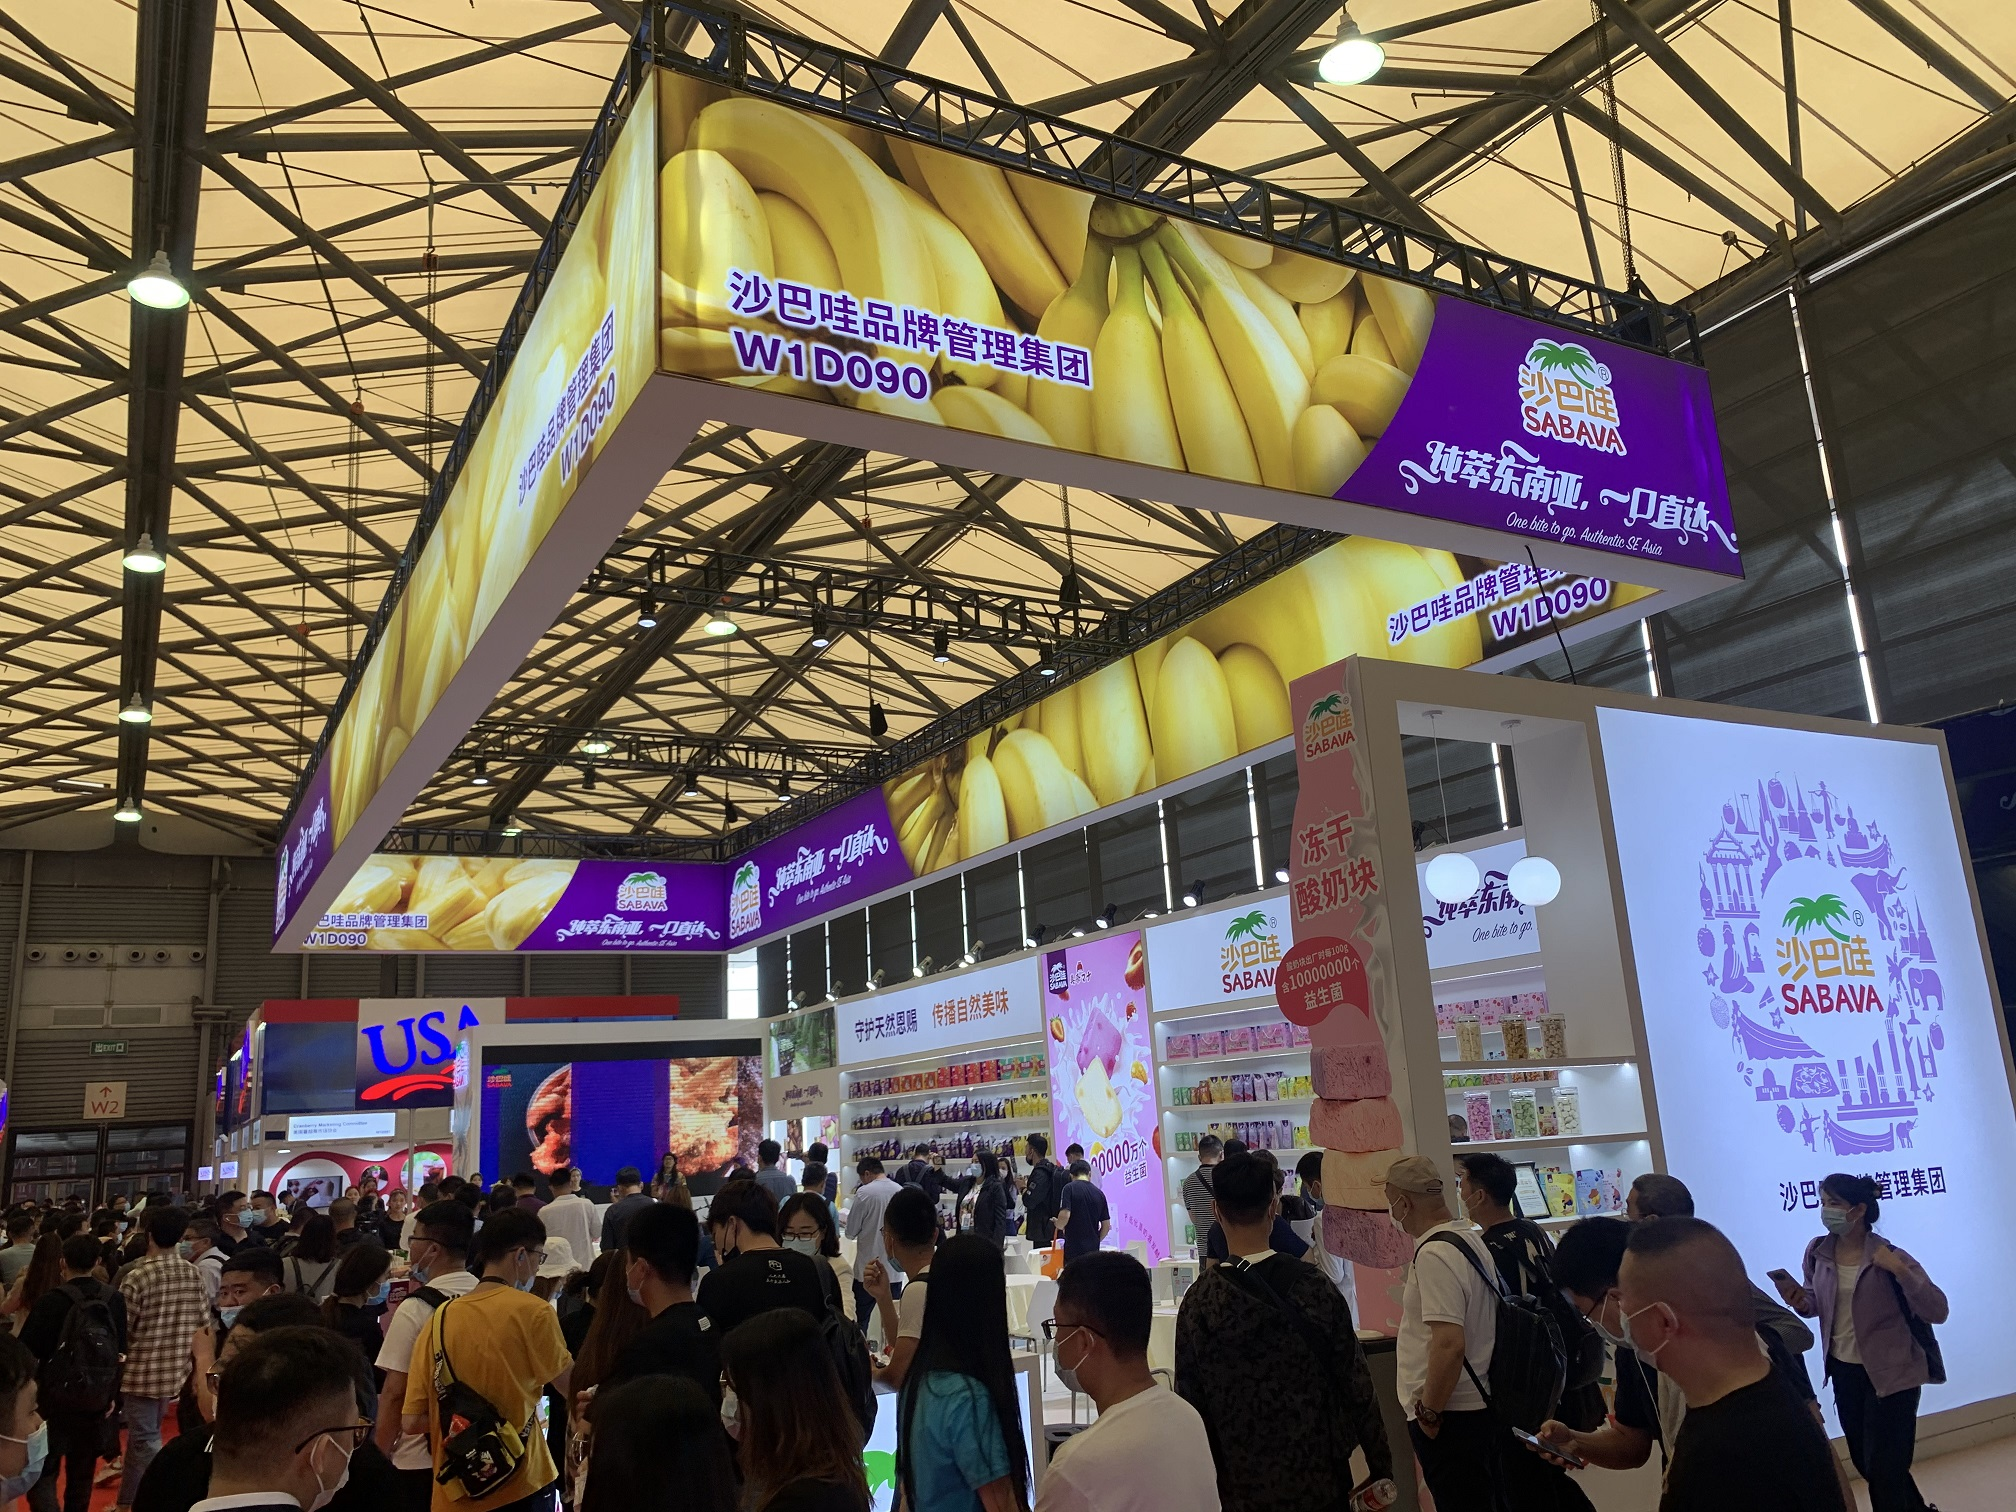 The 2021 Sial International Food Show opened today. Sabava new products won three awards!